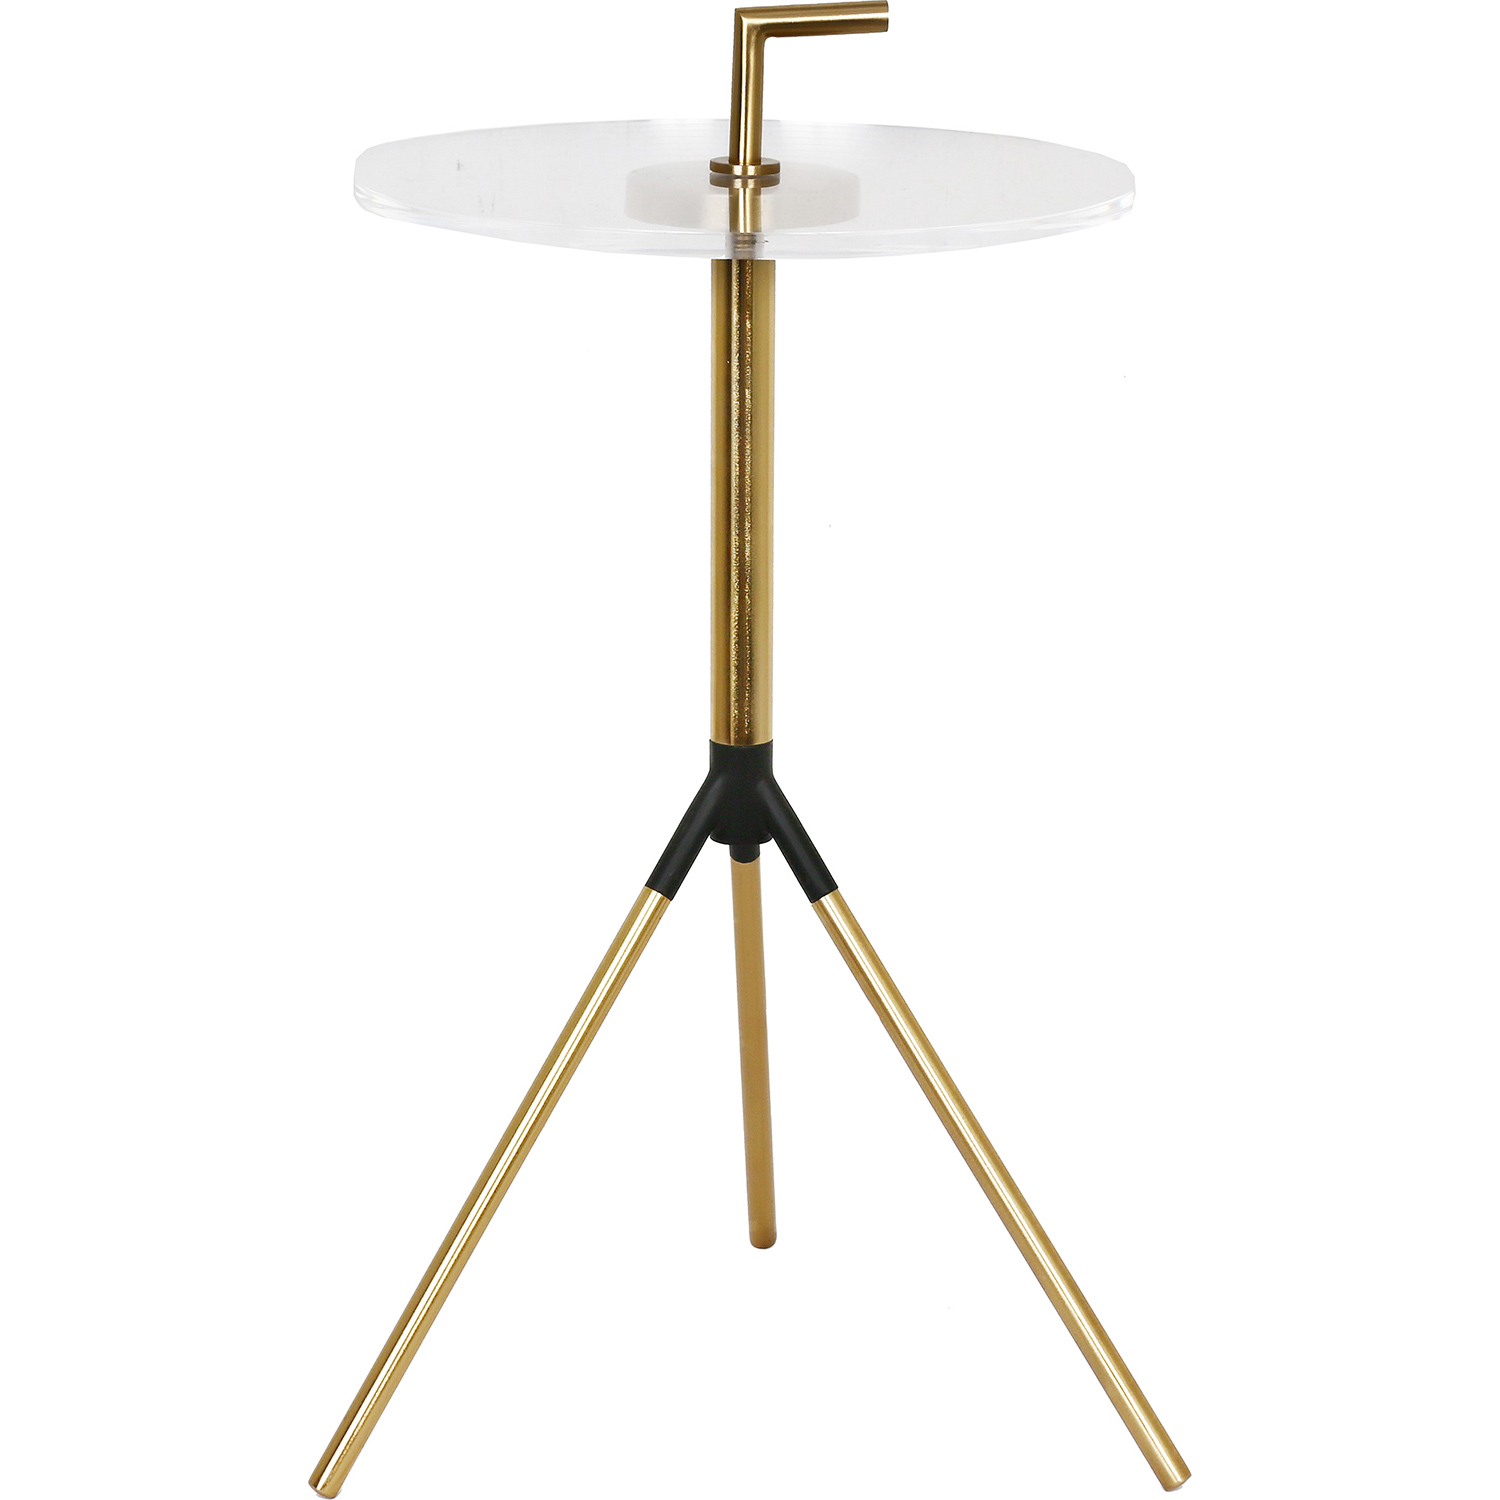 Ren-Wil Tabina Accent Table - Gold/Clear